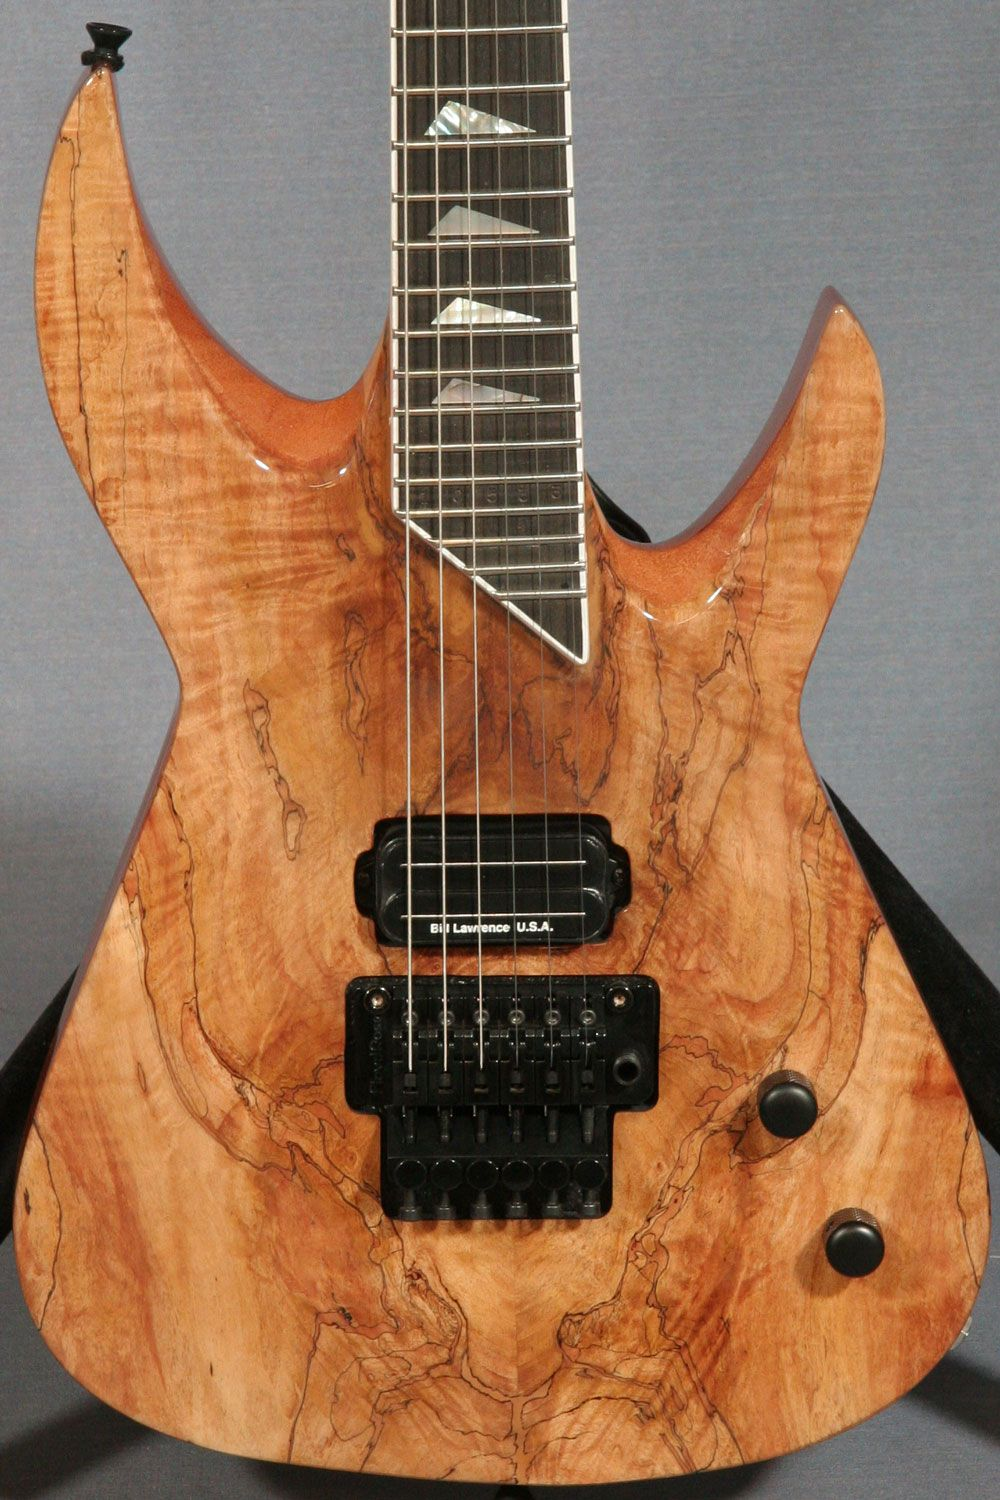 loca loca! caligula-spalted-body-1500.jpg (1000×1500)